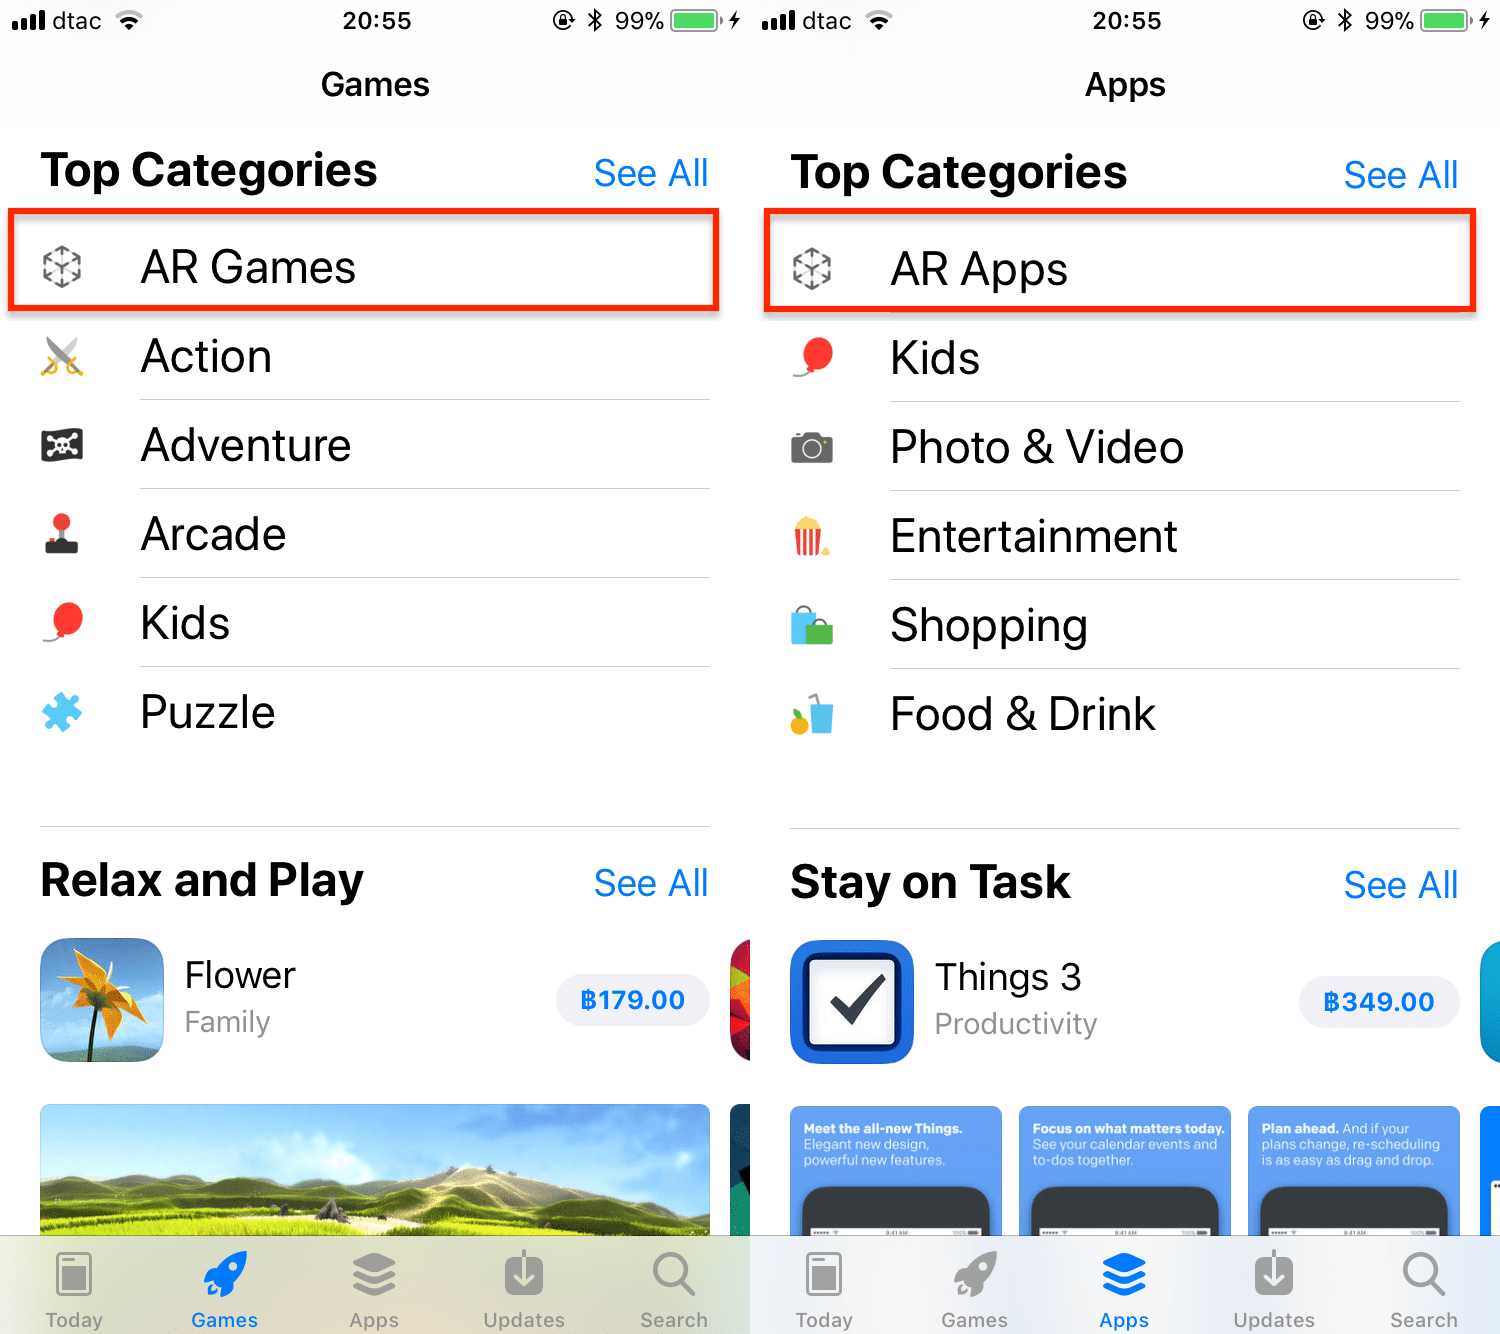 app-store-ios-11-ar-games-ar-apps 1